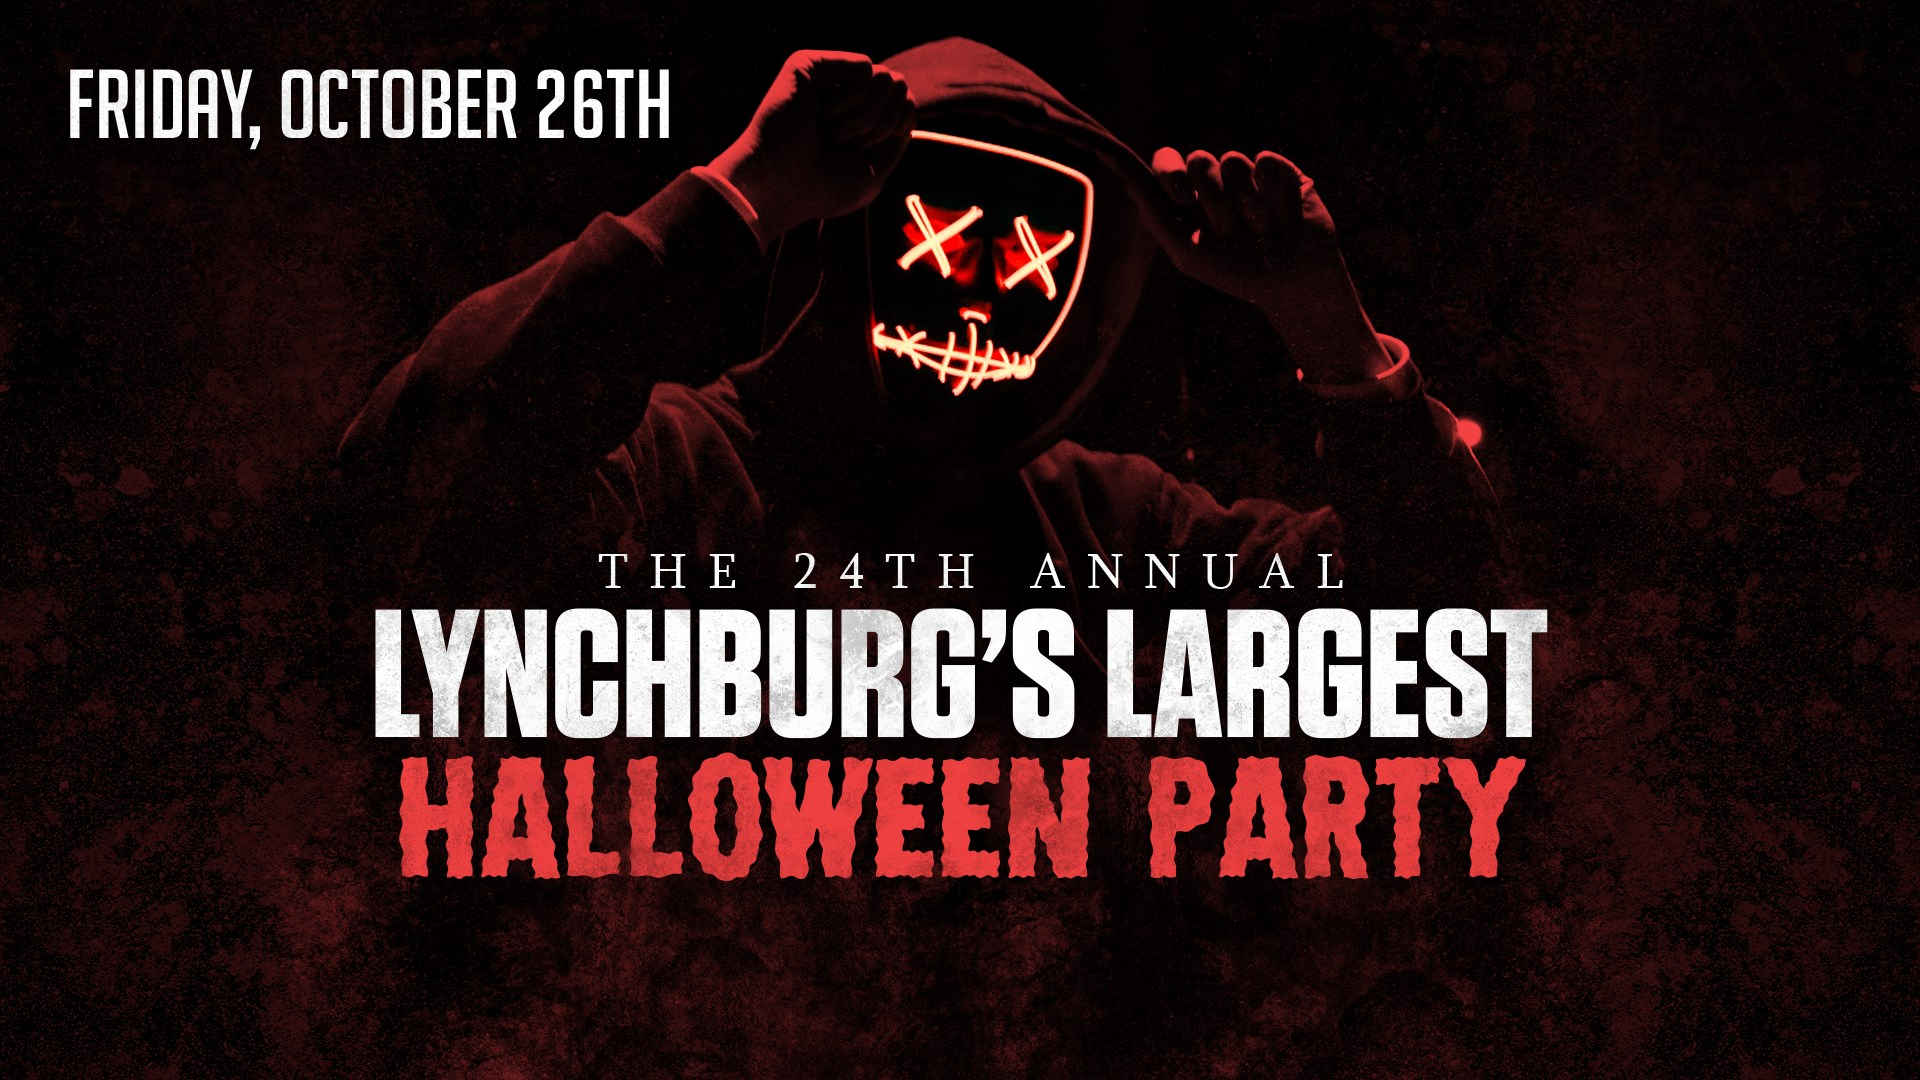 Lynchburg's Largest Halloween Party - Phase 2, 9pm-2amTickets $10/presaleLynchburg's largest Halloween party is back for its landmark 24th year! This event will feature over $5,000 in cash & prizes, Lynchburg's biggest costume contest, DJ's, drink specials, and live music with 7 Mile Ford! This event is 21+ and doors open at 8pm.